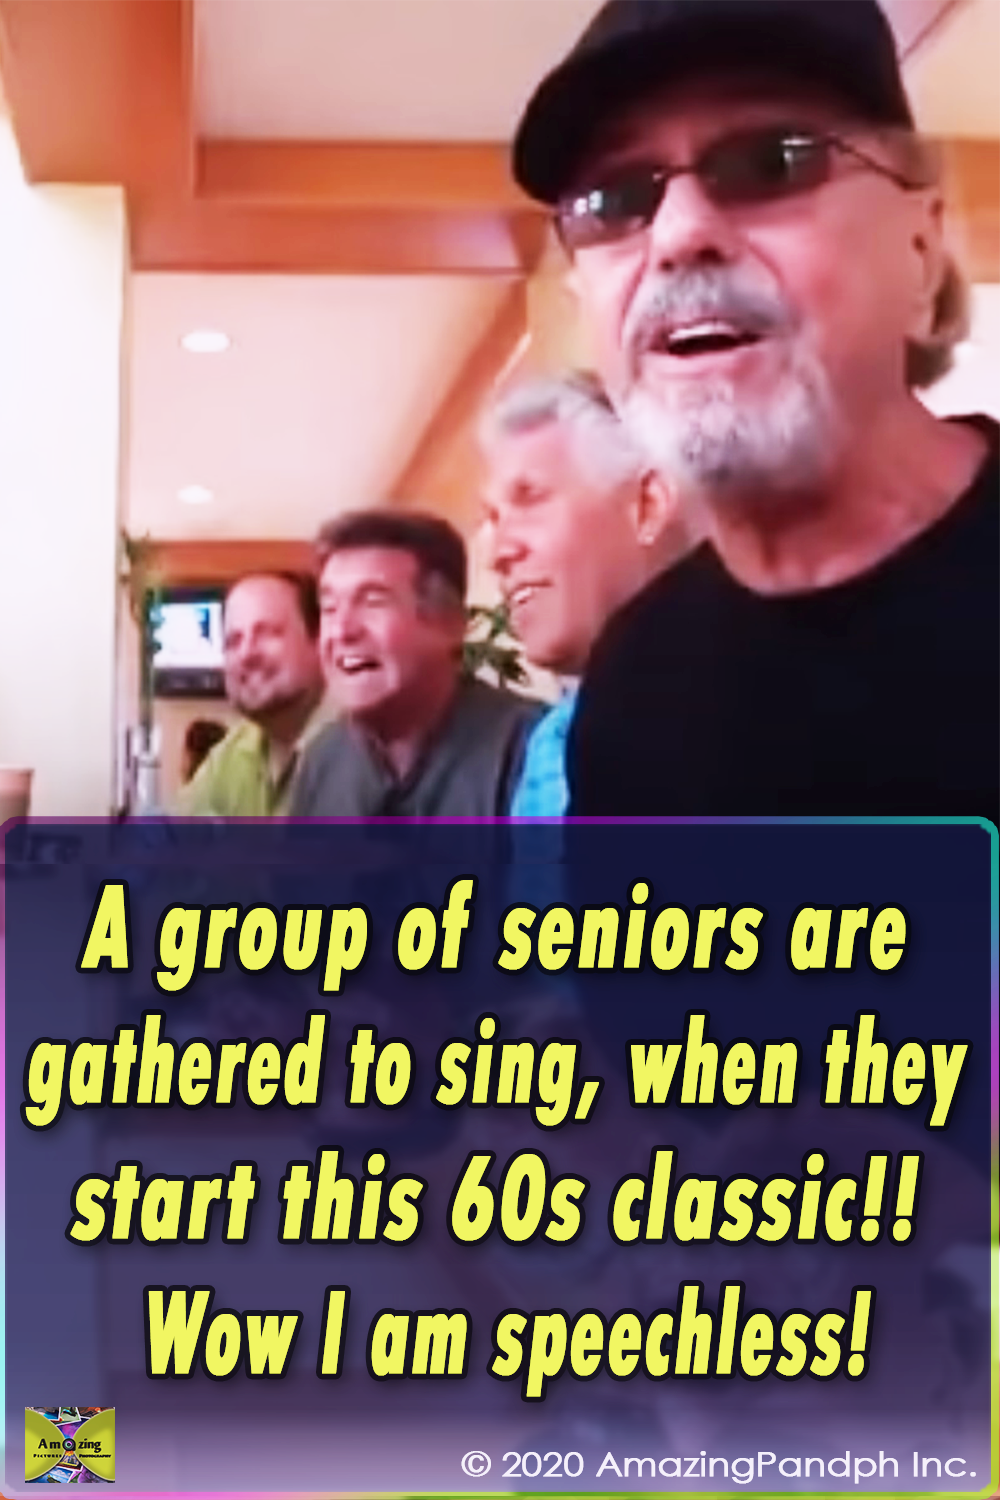 viral,video,song,sing,senior,best of,dress,dressing,viral video,cute,cute puppies,amazing,most viewed,most shared,most watched,sing in lunch,lunch song,the wanderer song